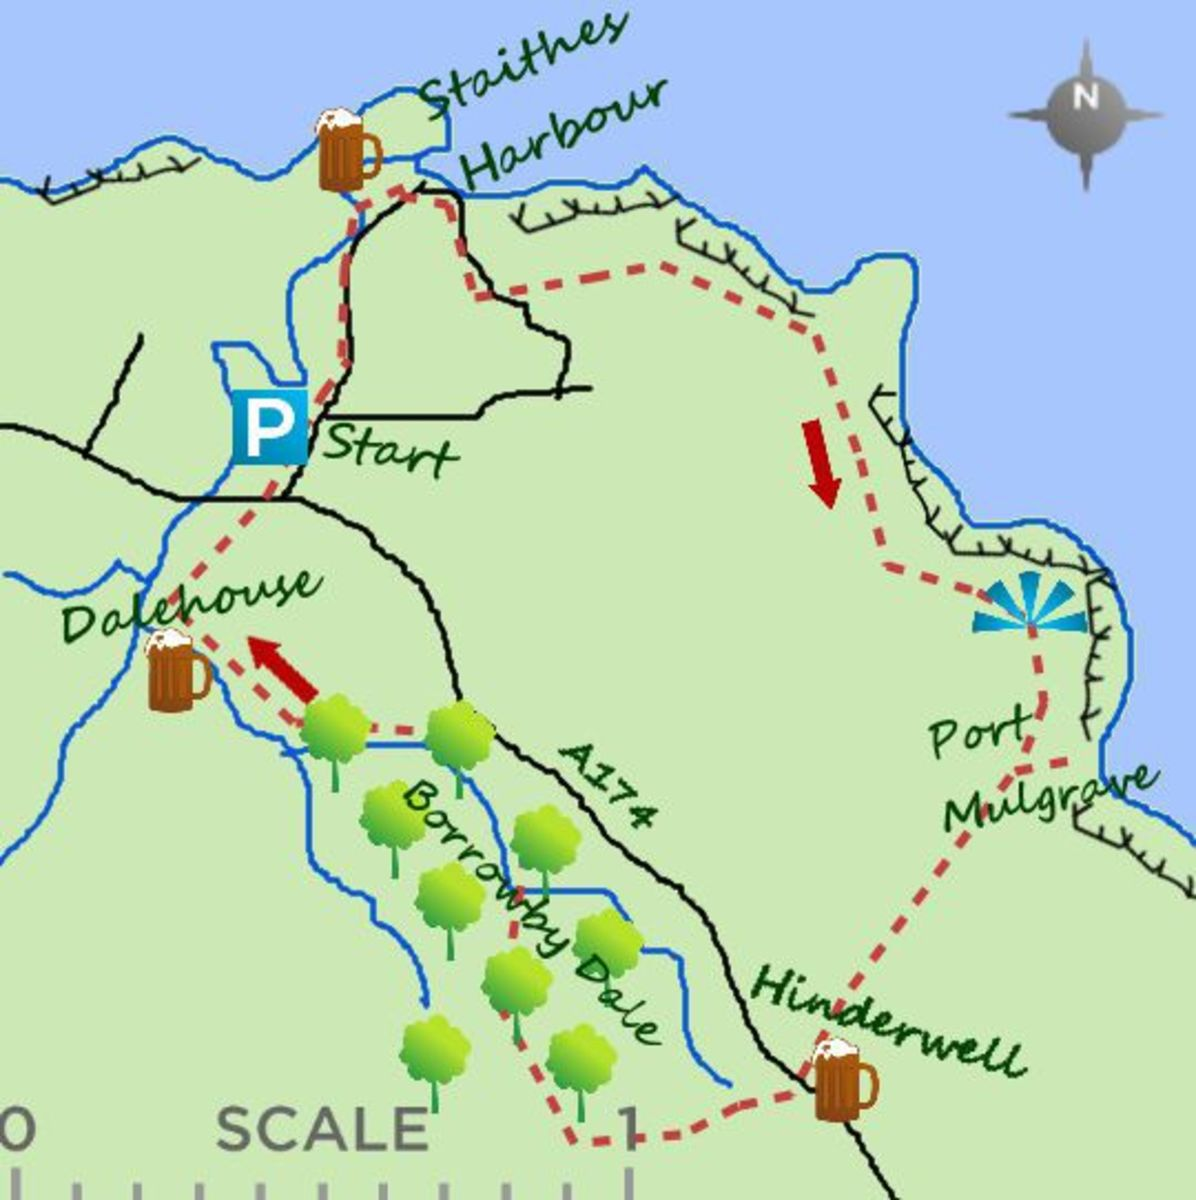 Hinderwell, Runswick, Port Mulgrave and Staithes walk route